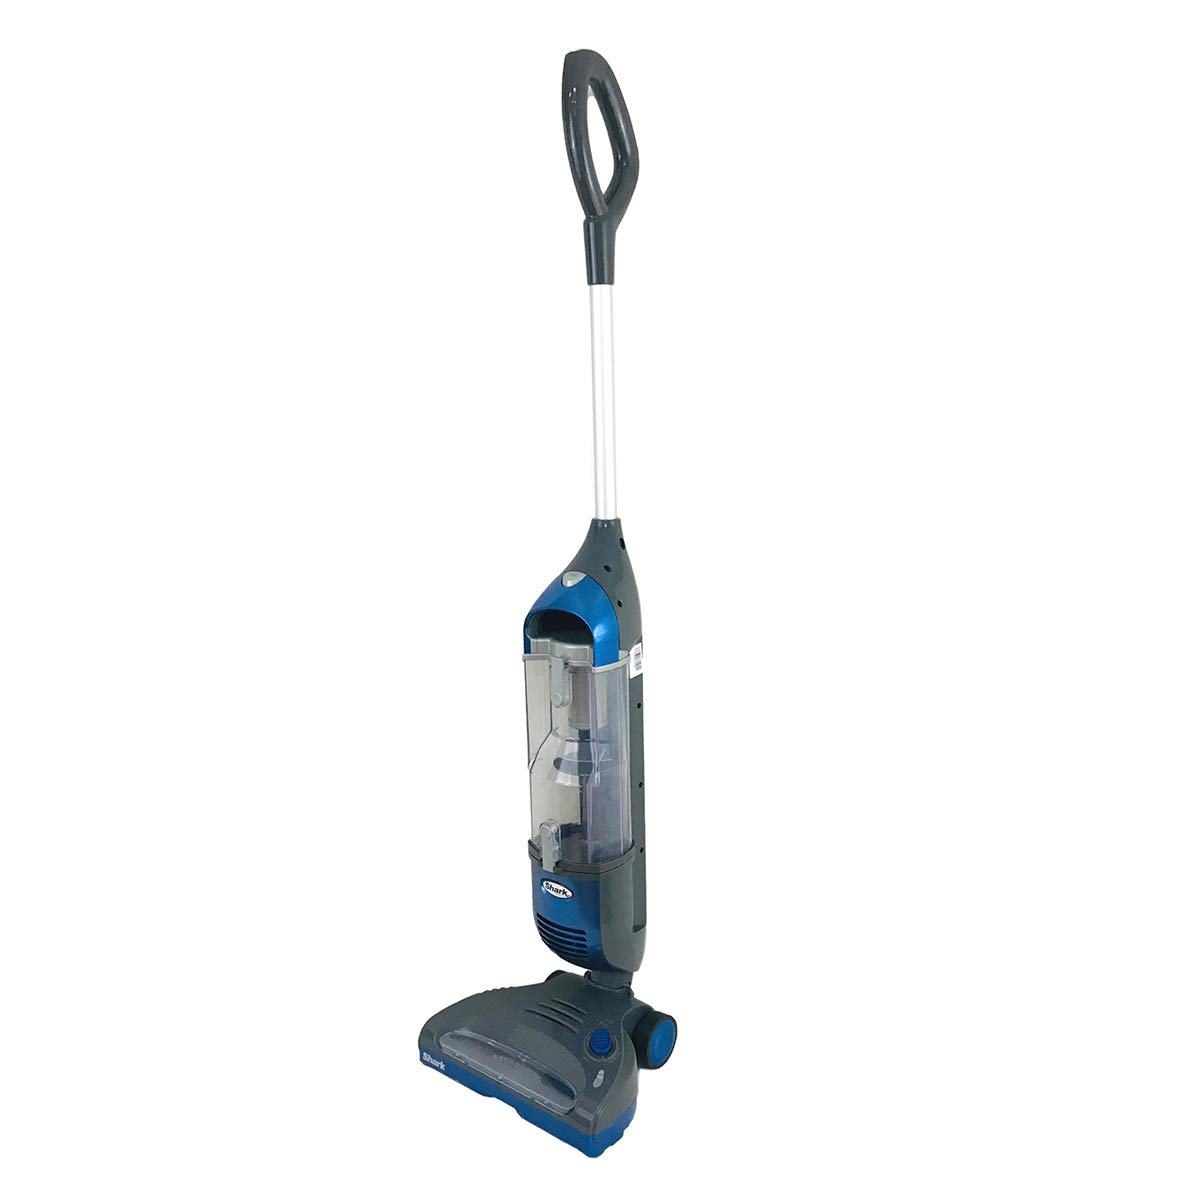 Shark Rotator Freestyle PRO Cordless Vacuum for Easy Maneuvering Upright Lightweight SV1112 Bagless Extra-Large Dust Cup SV1112QEB (Renewed) (Blue Jeans)